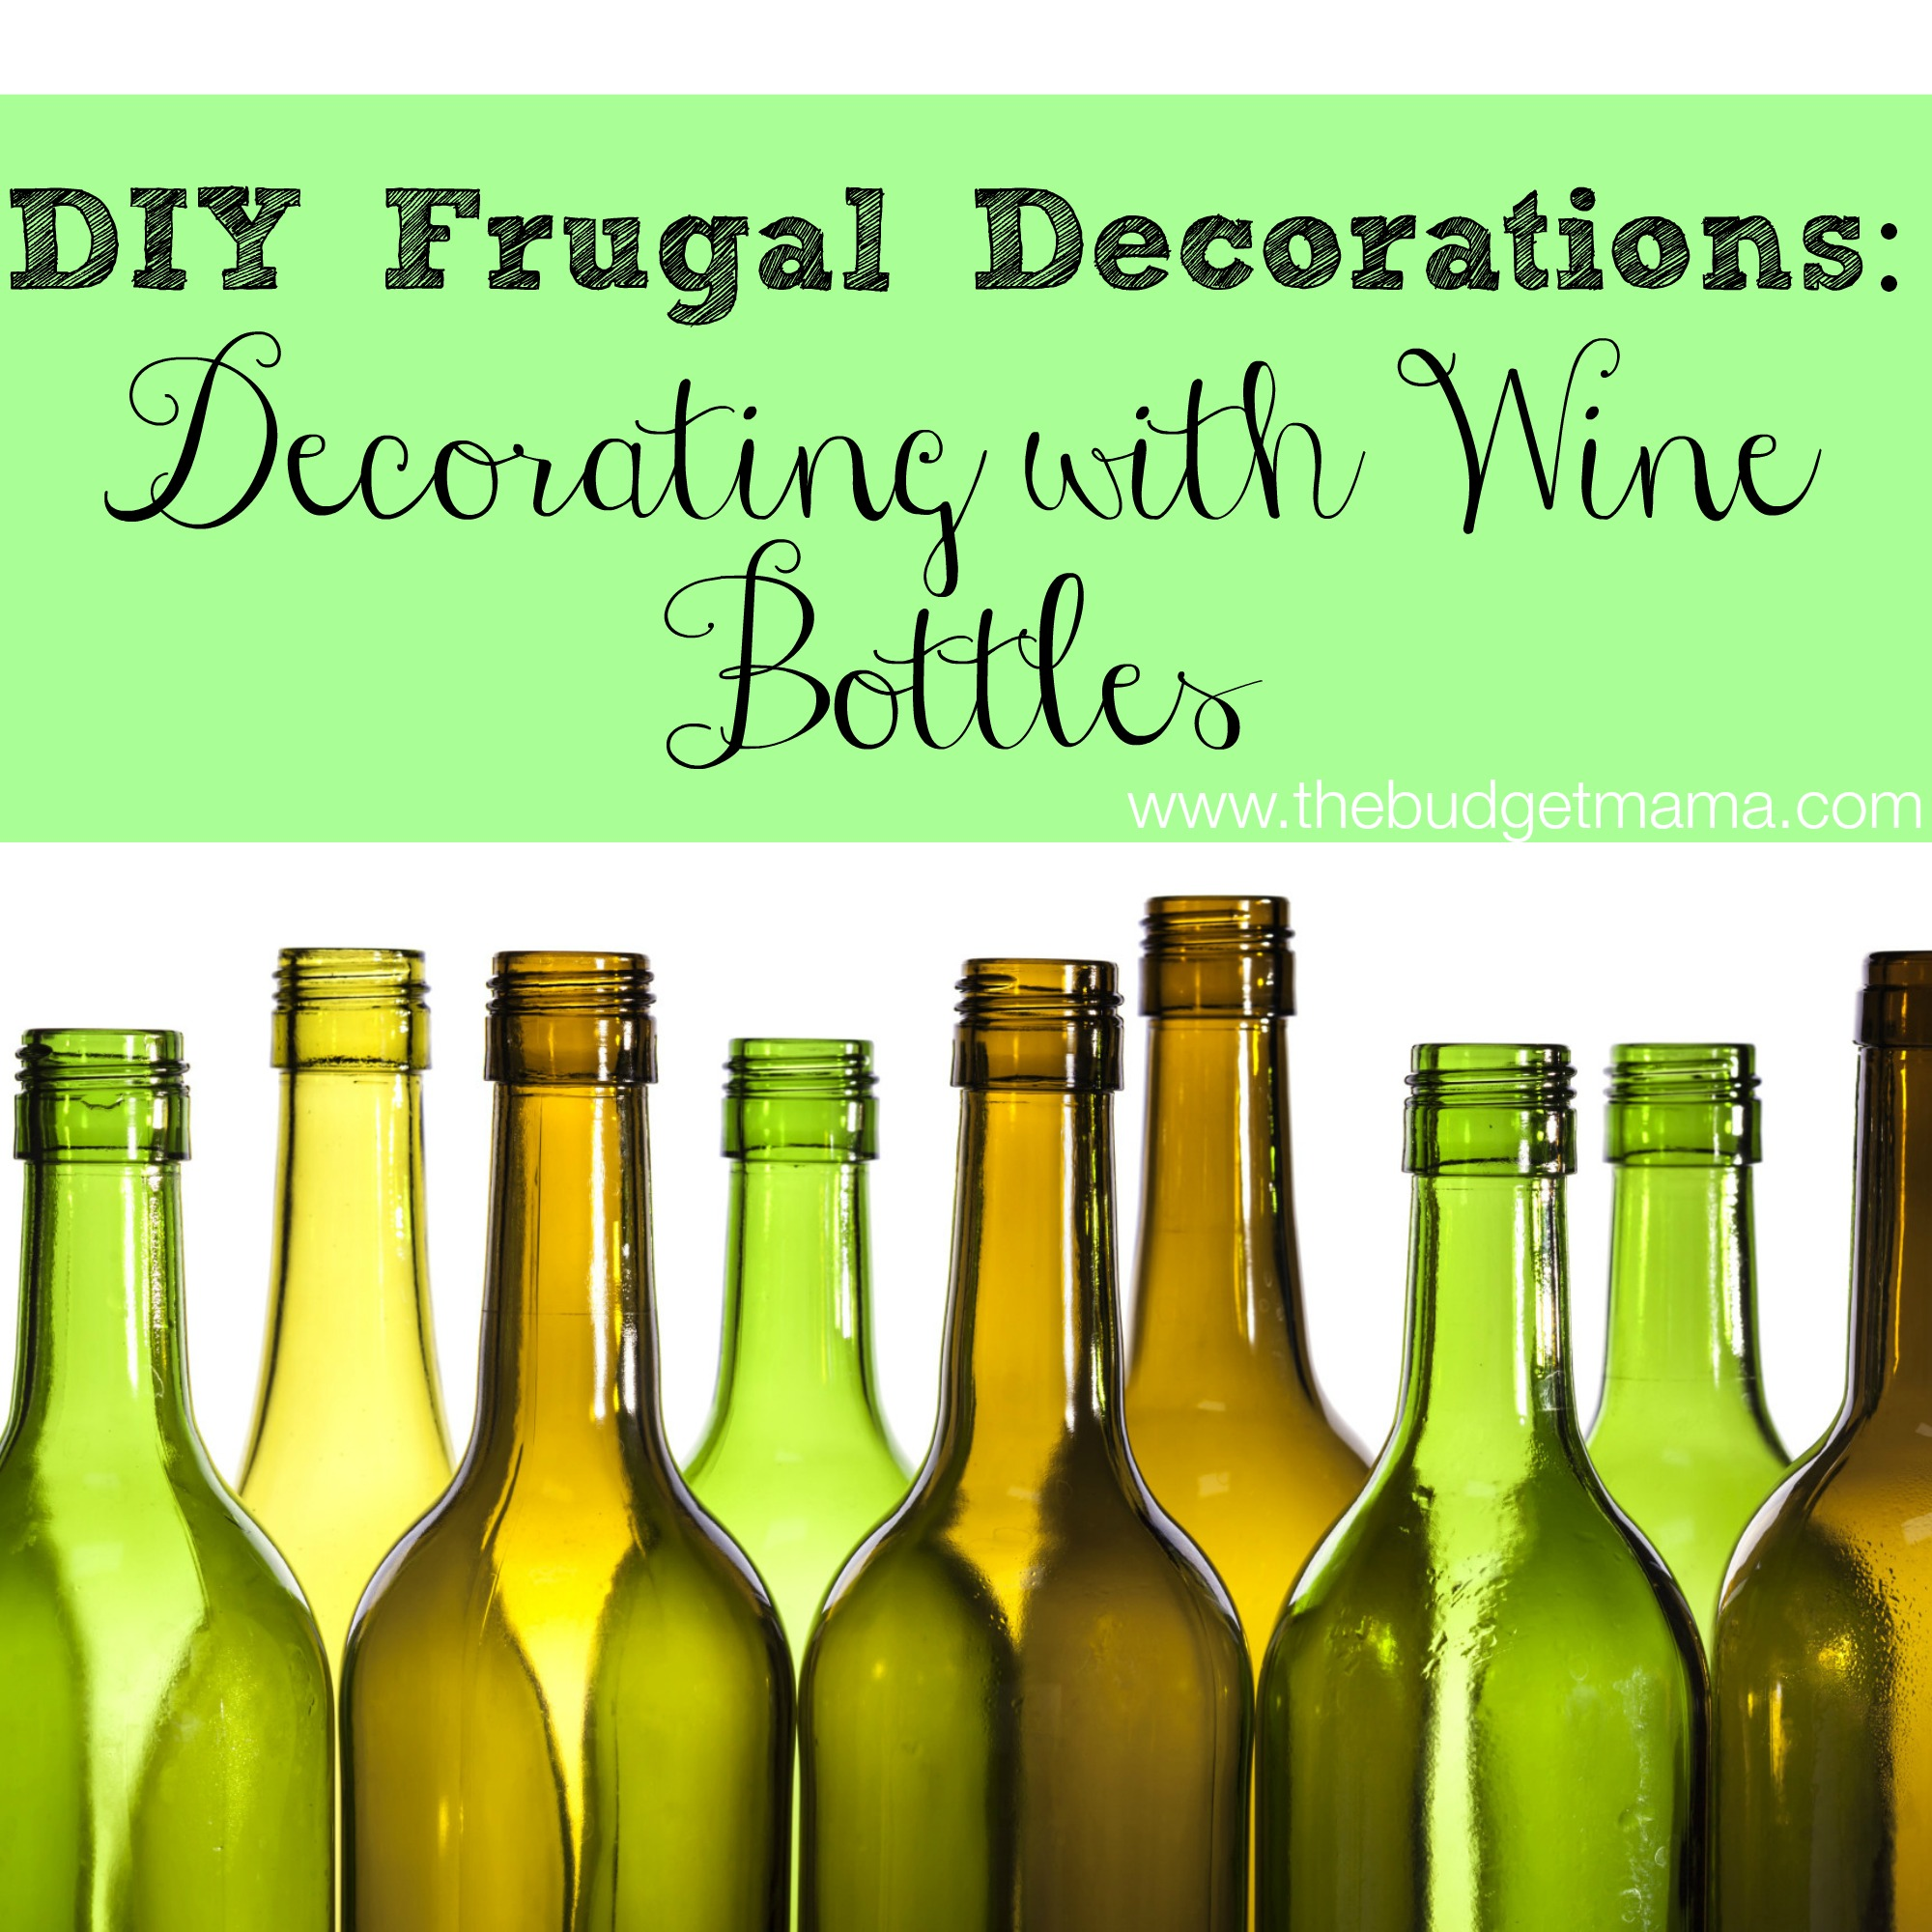 DIY Frugal Decorations: Decorating with Wine Bottles